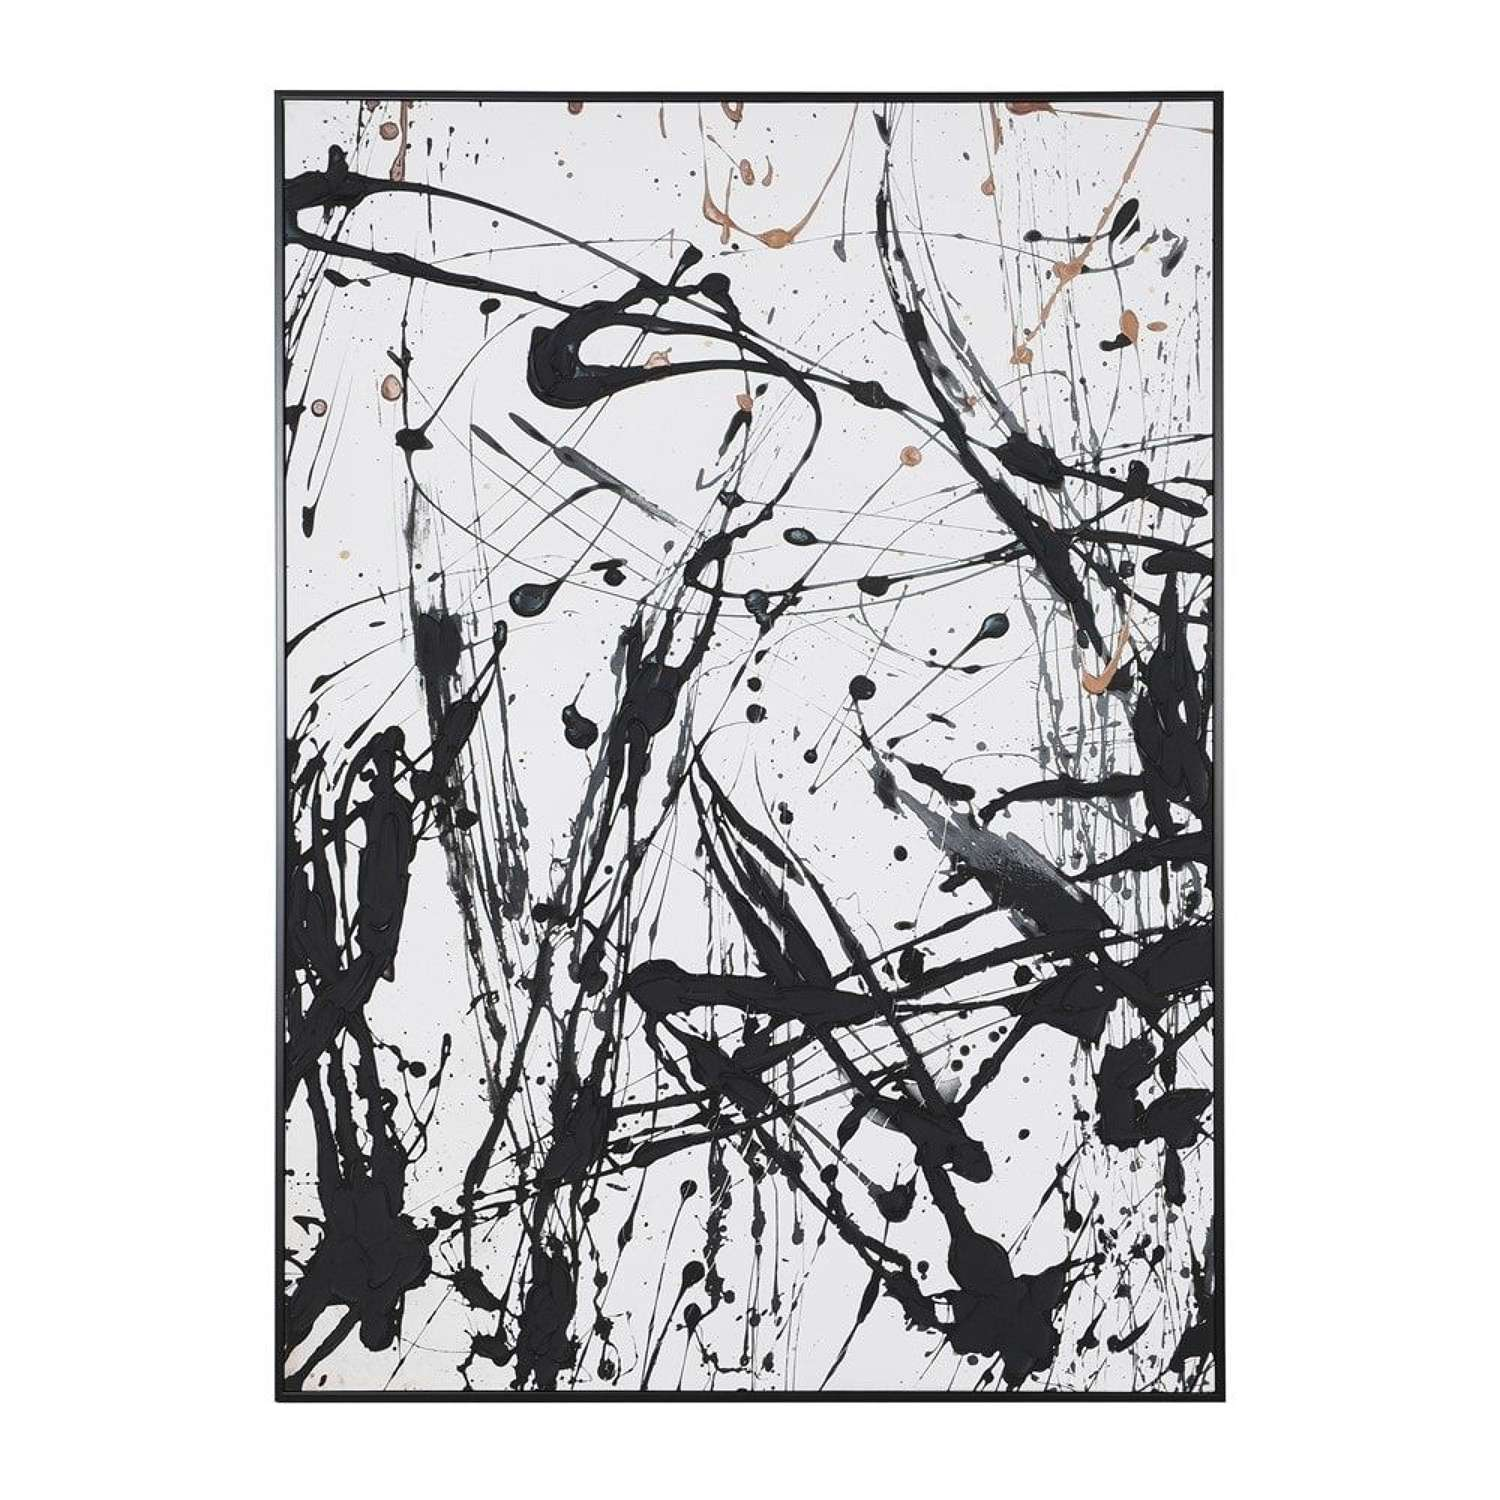 Huge Framed Abstract Artwork - Splatter Paint